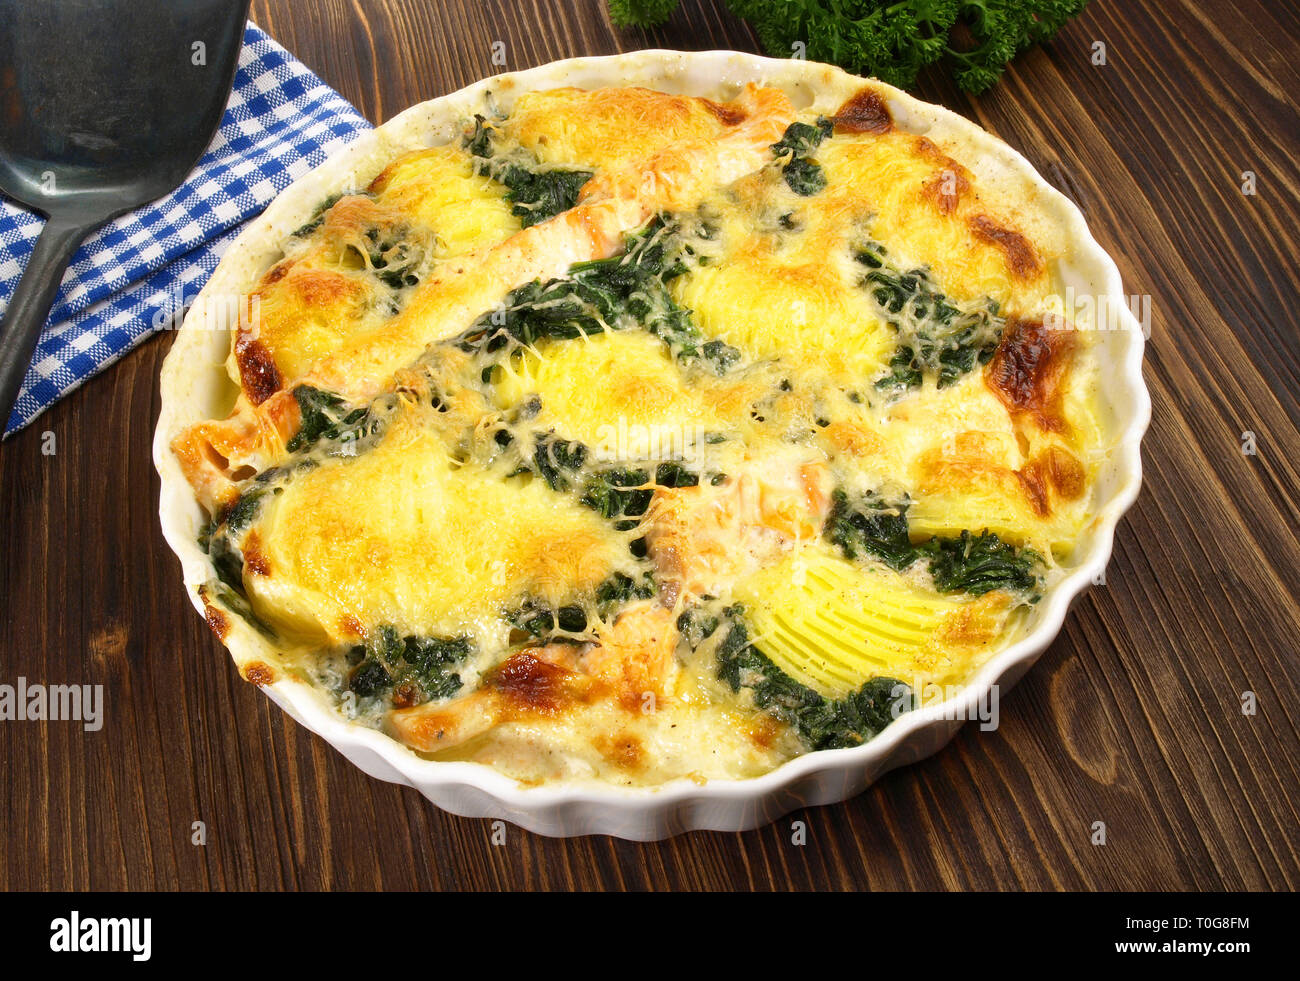 Salmon - Fish Gratin with Spinach - Stock Image